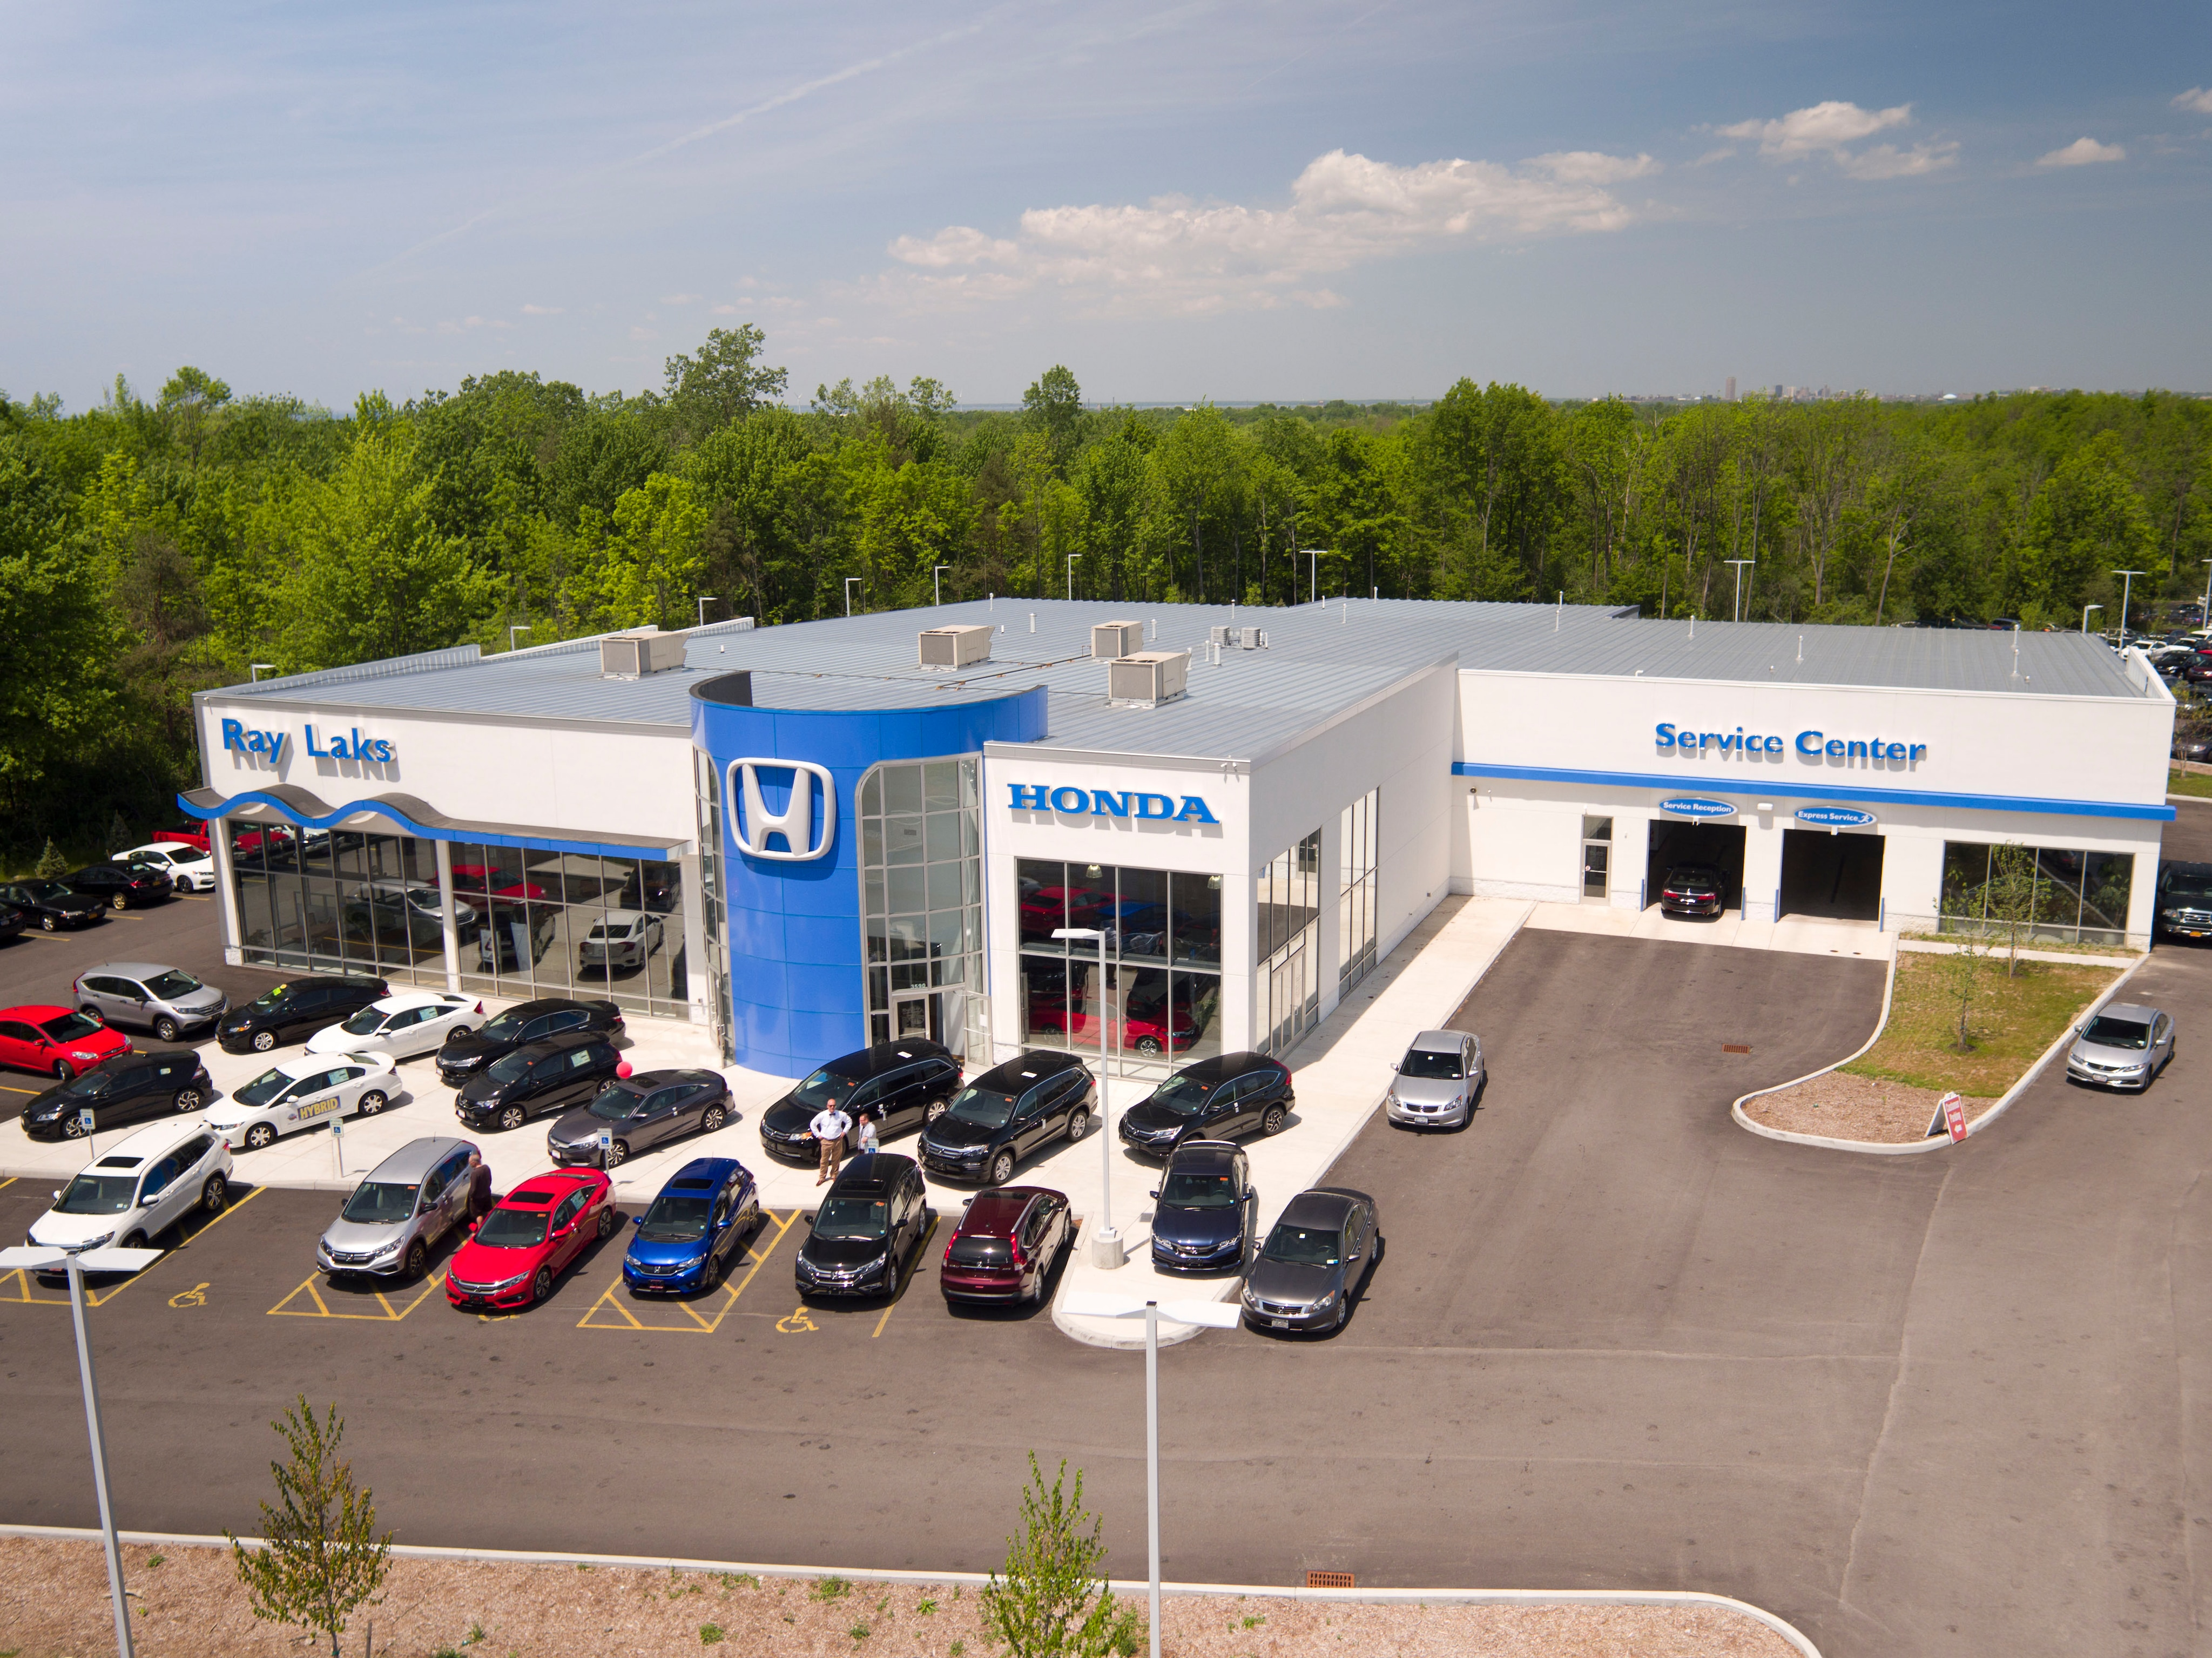 Our Dedication As A Dealership ...